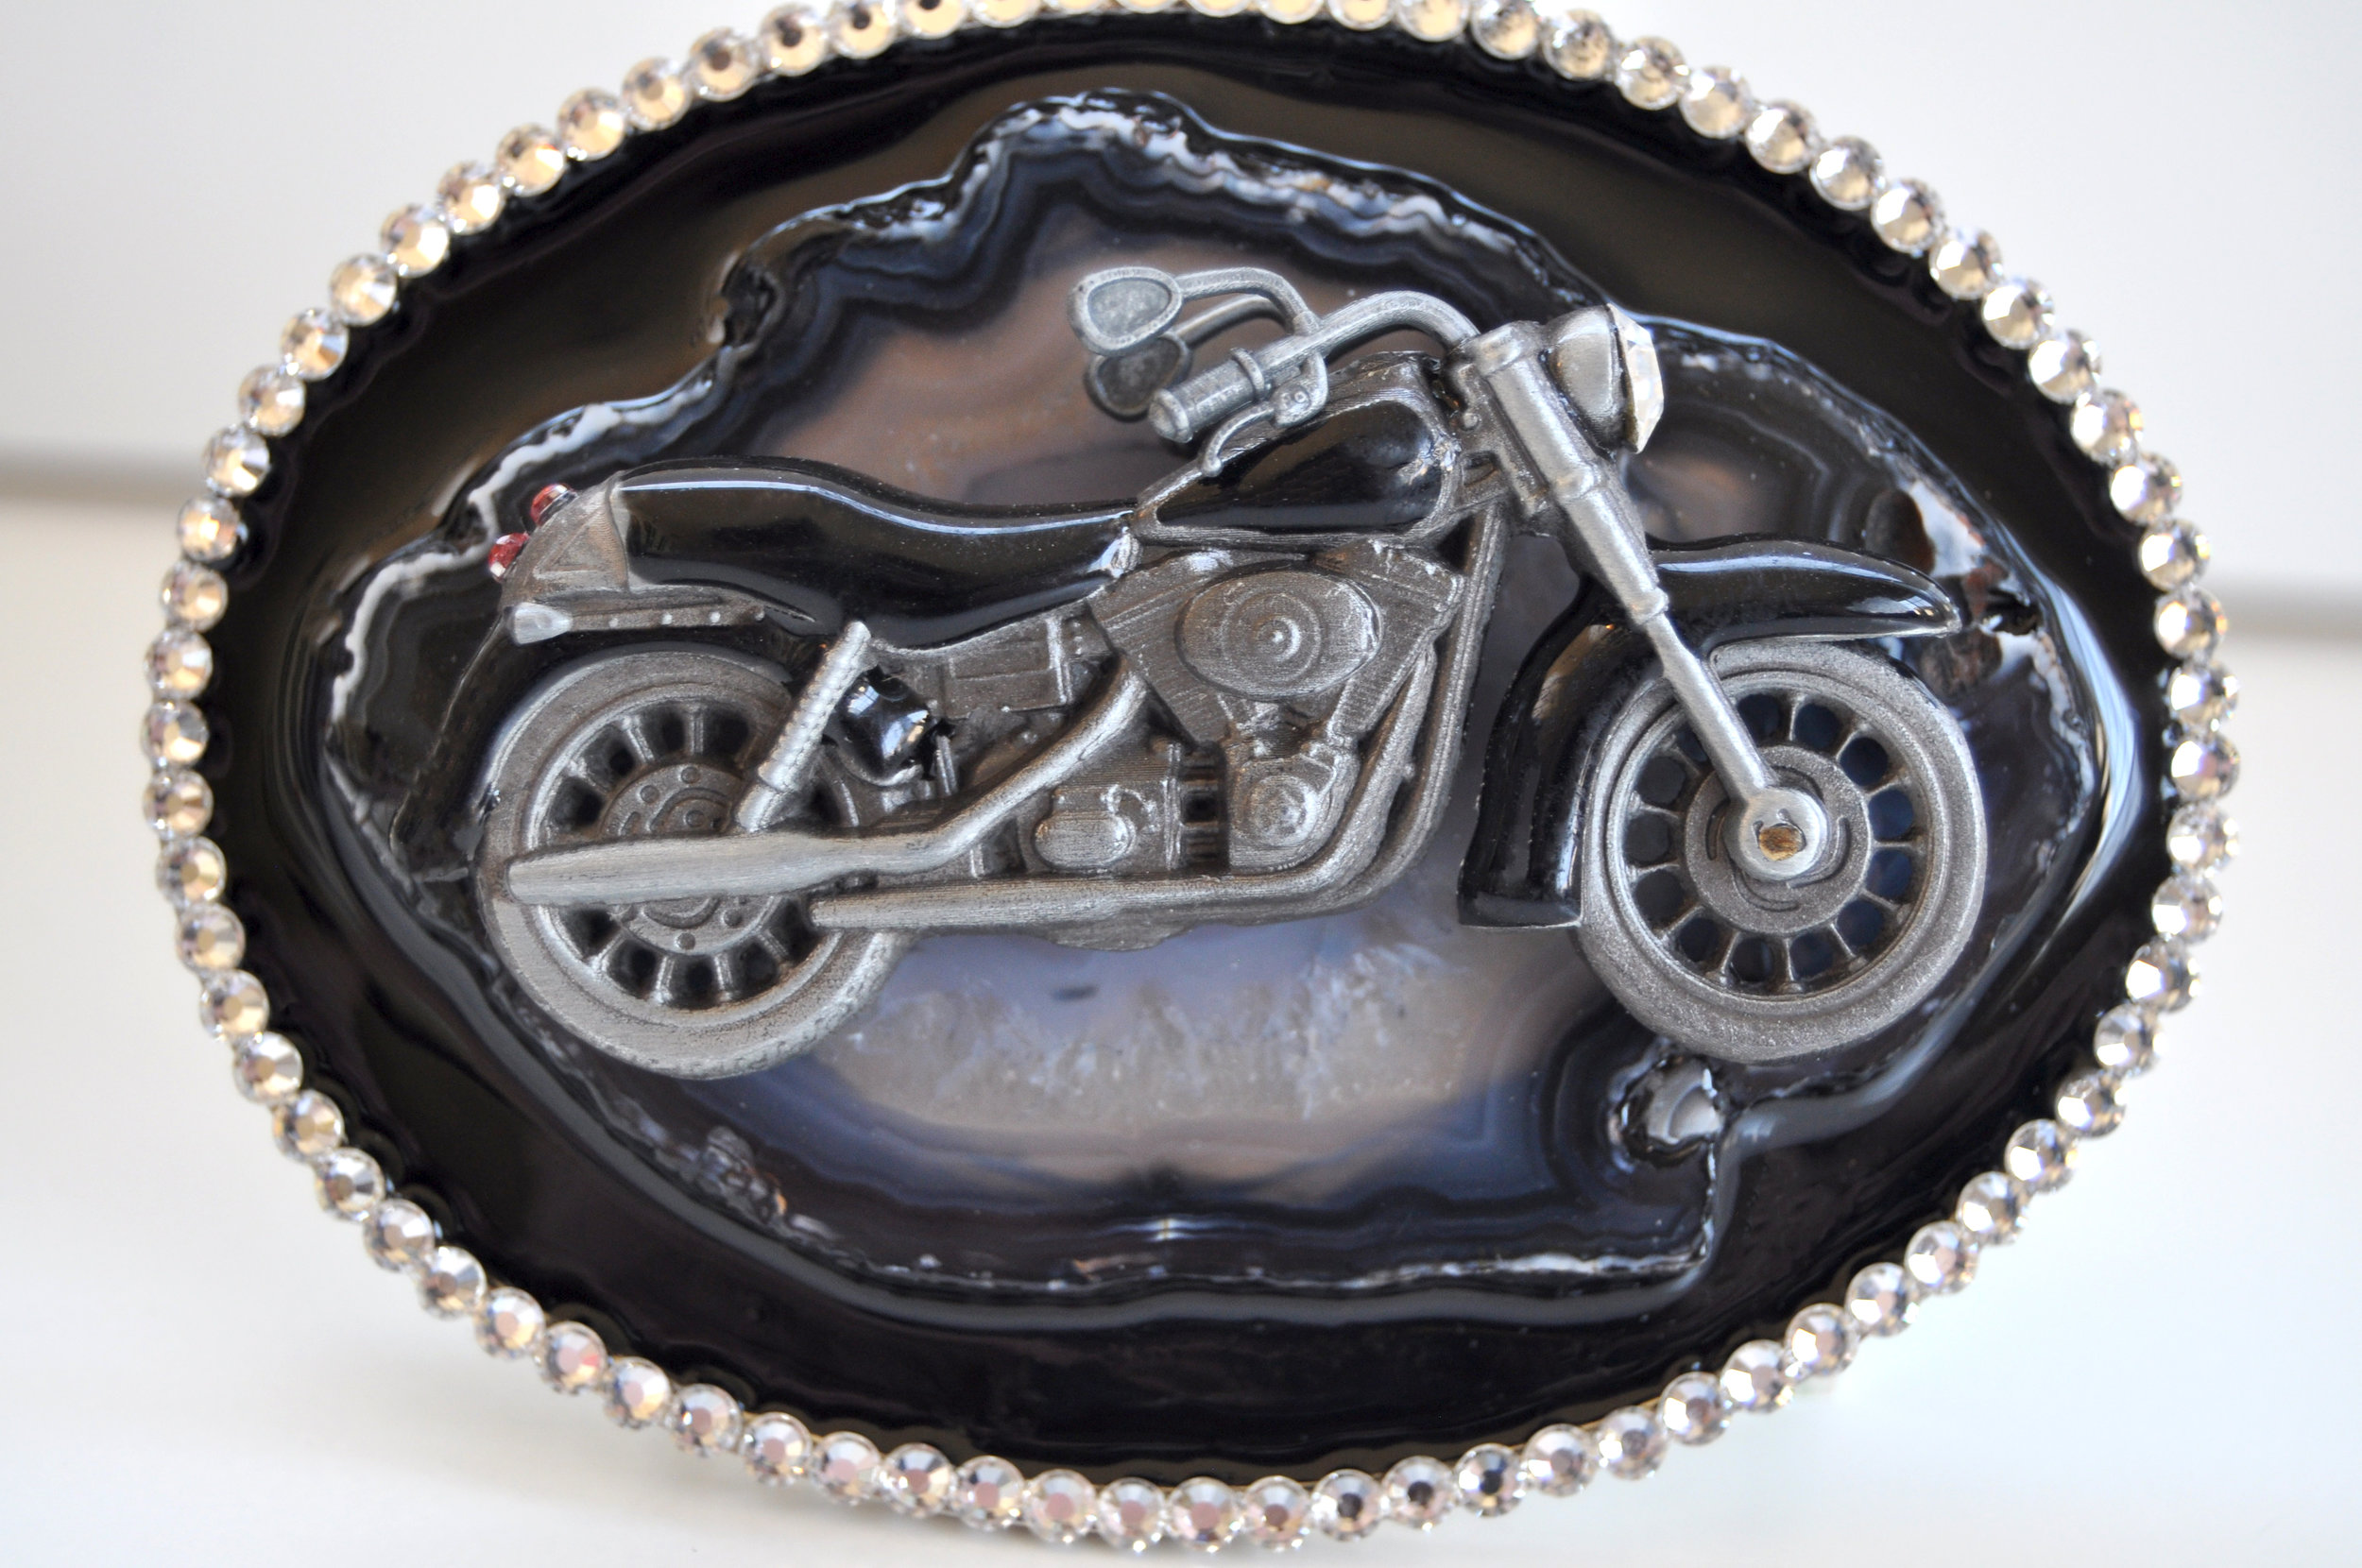 Motorcycle Agate Close.jpg